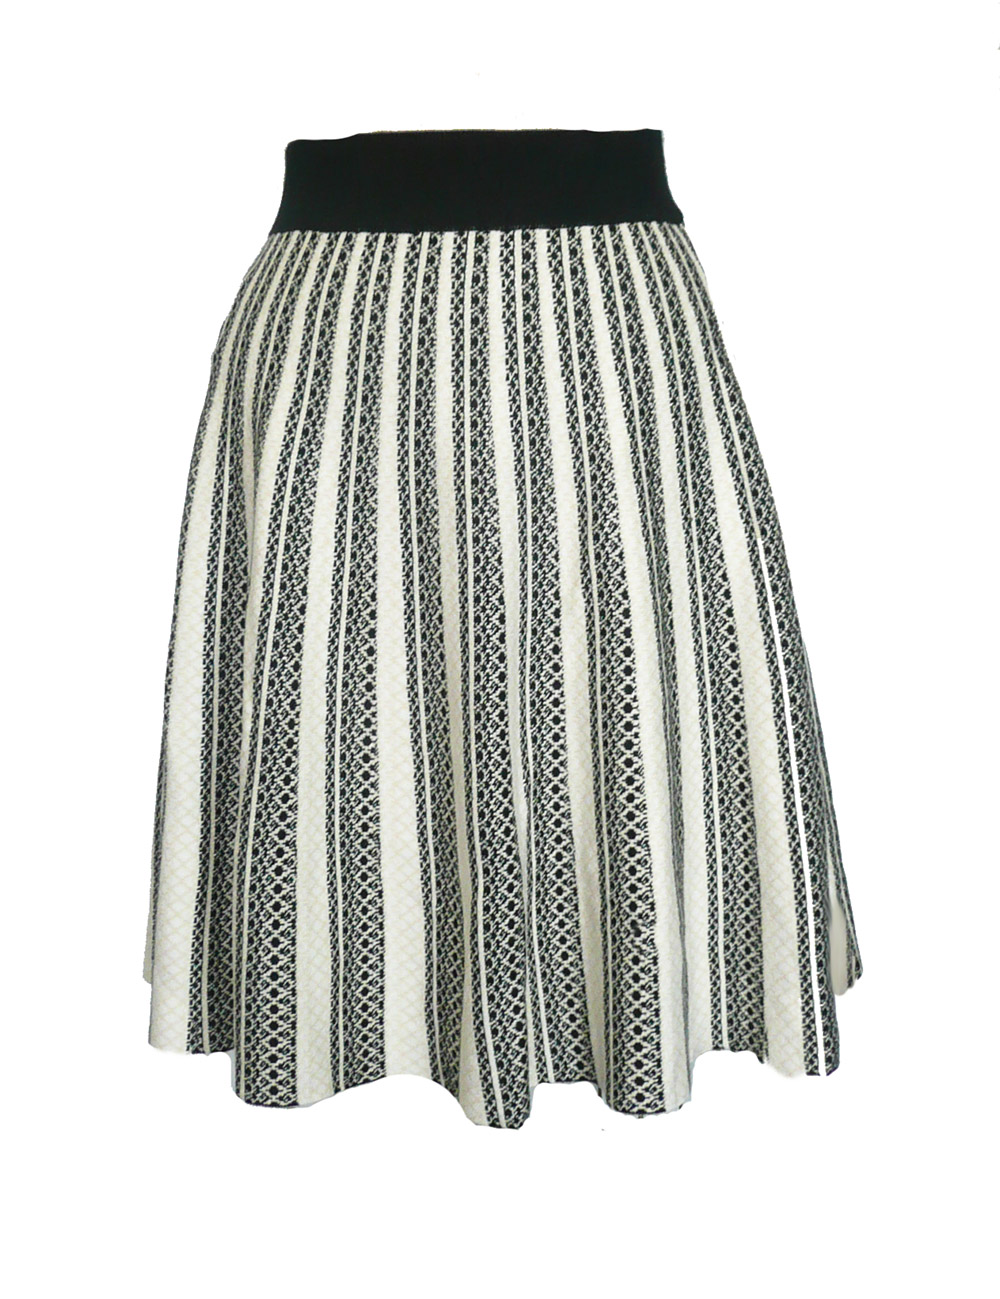 skirt bw stripe knit.jpg